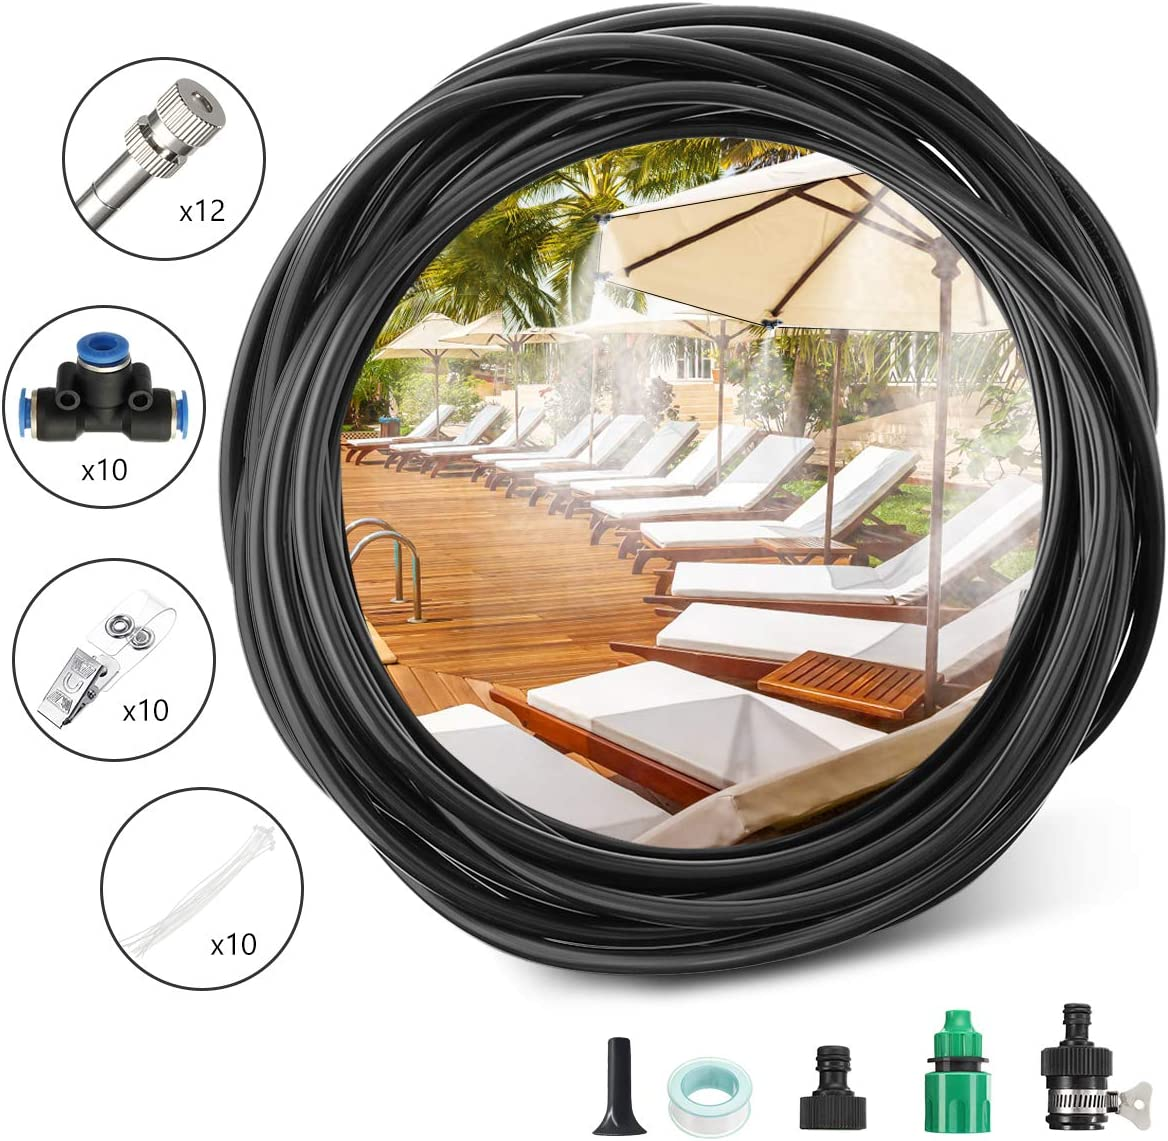 PATHONOR Misting Cooling System 32.8ft 10M 4 7 Tubing 12 Misting Nozzle Outdoor Cooling System for Patio Garden Lawn Swimming Pool Umbrella Trampoline